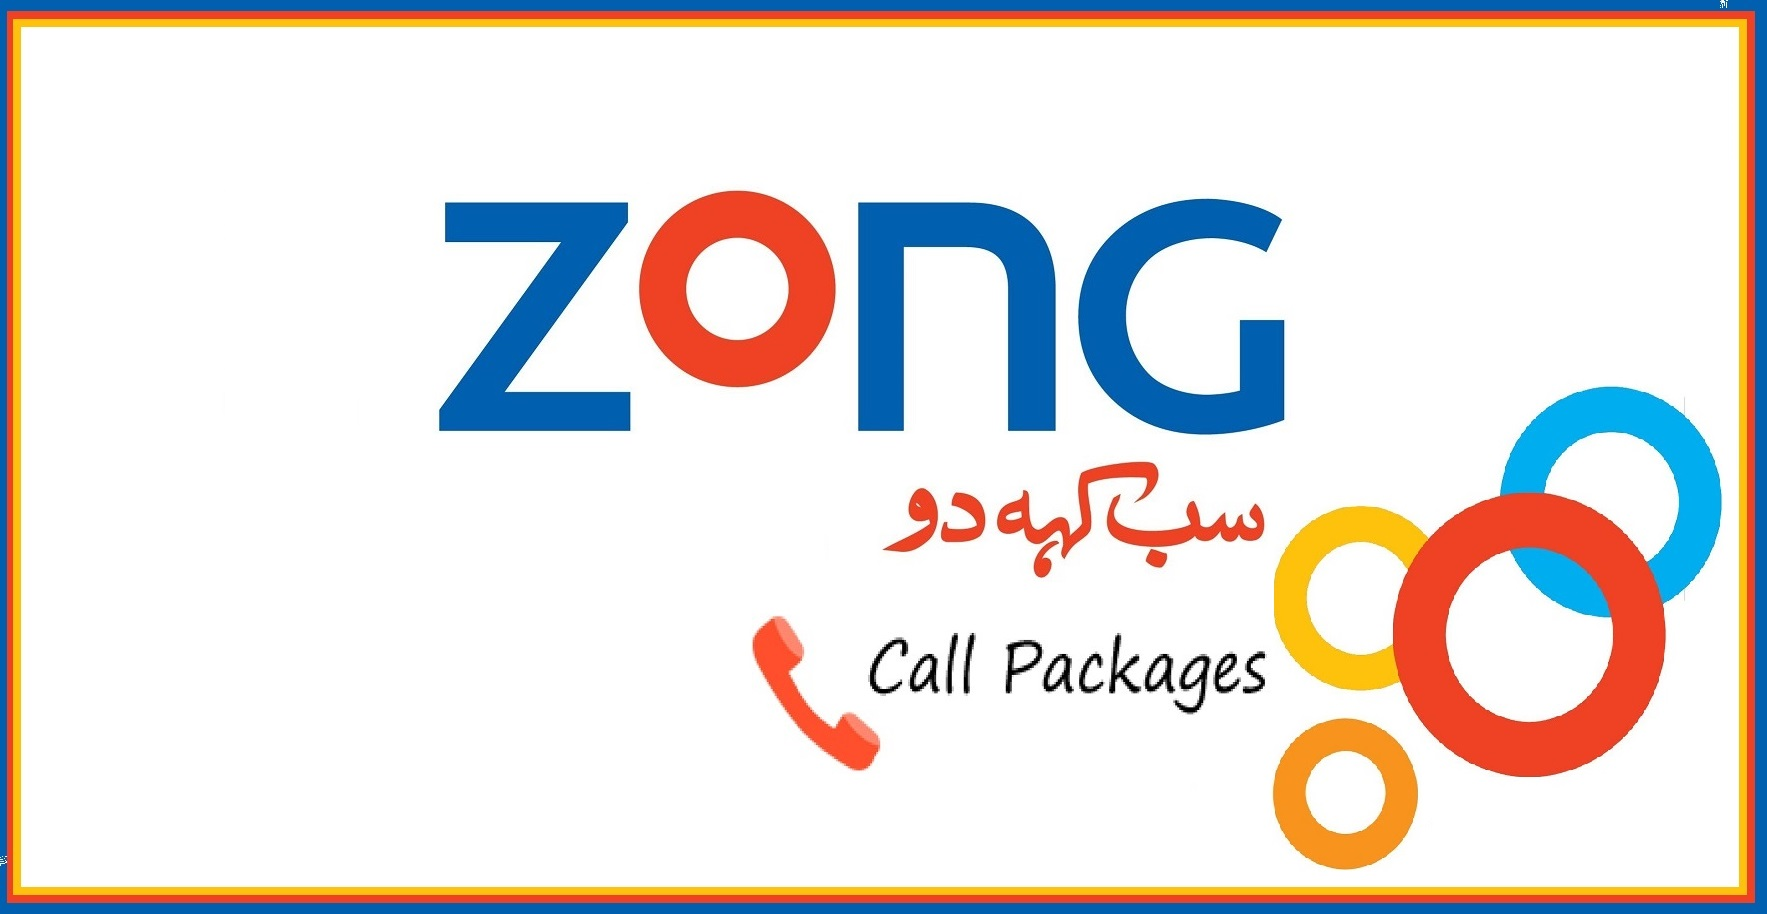 How can I check my remaining minutes on Zong?